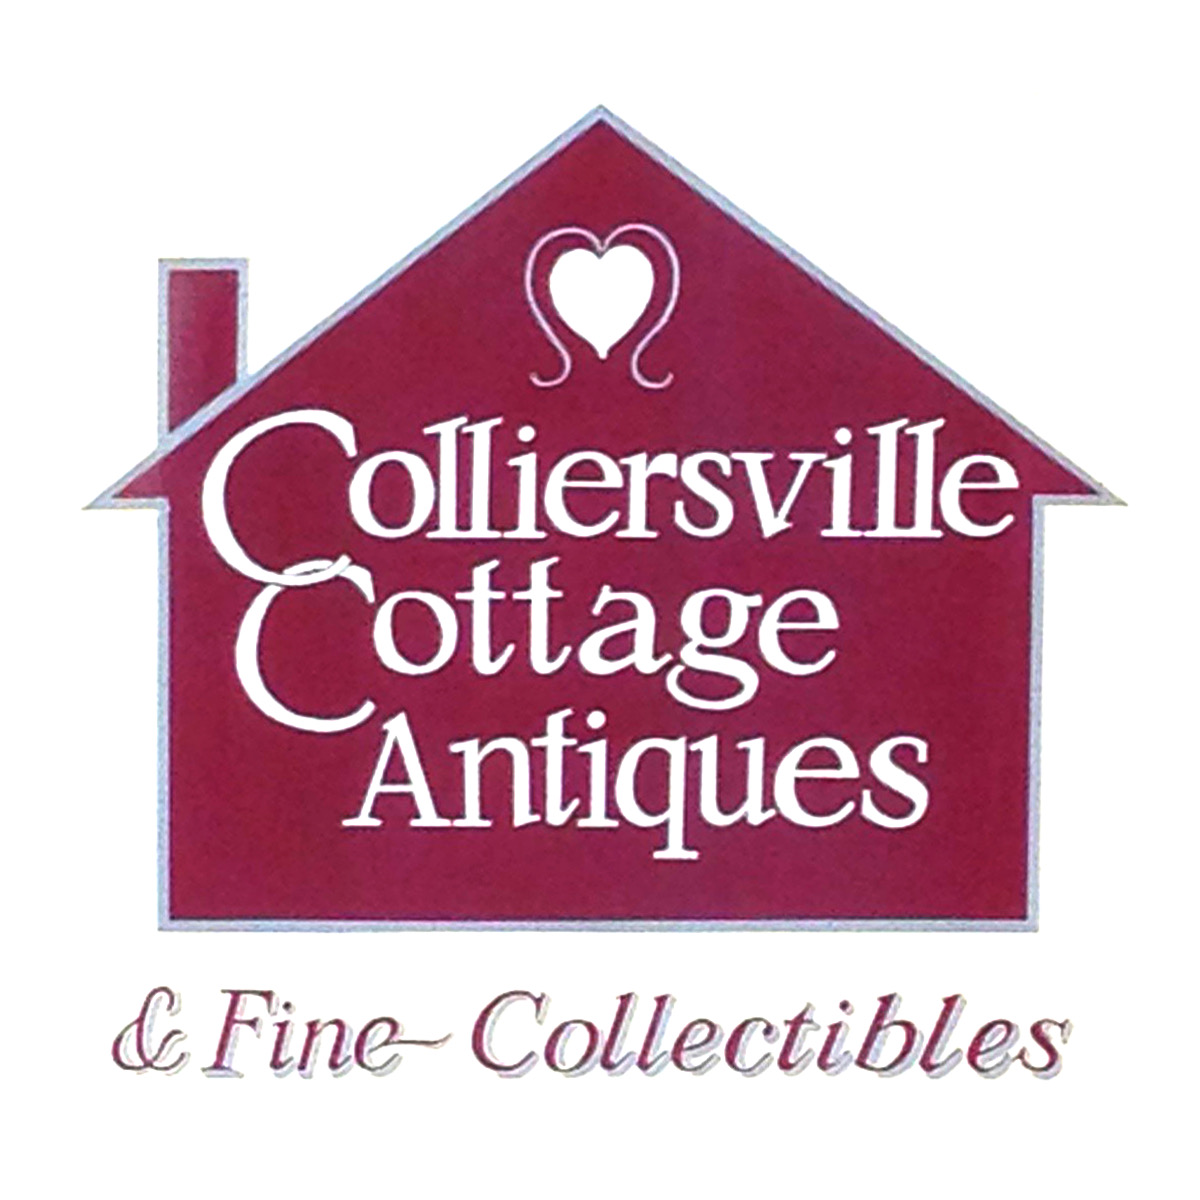 Colliersville Cottage Antiques Logo